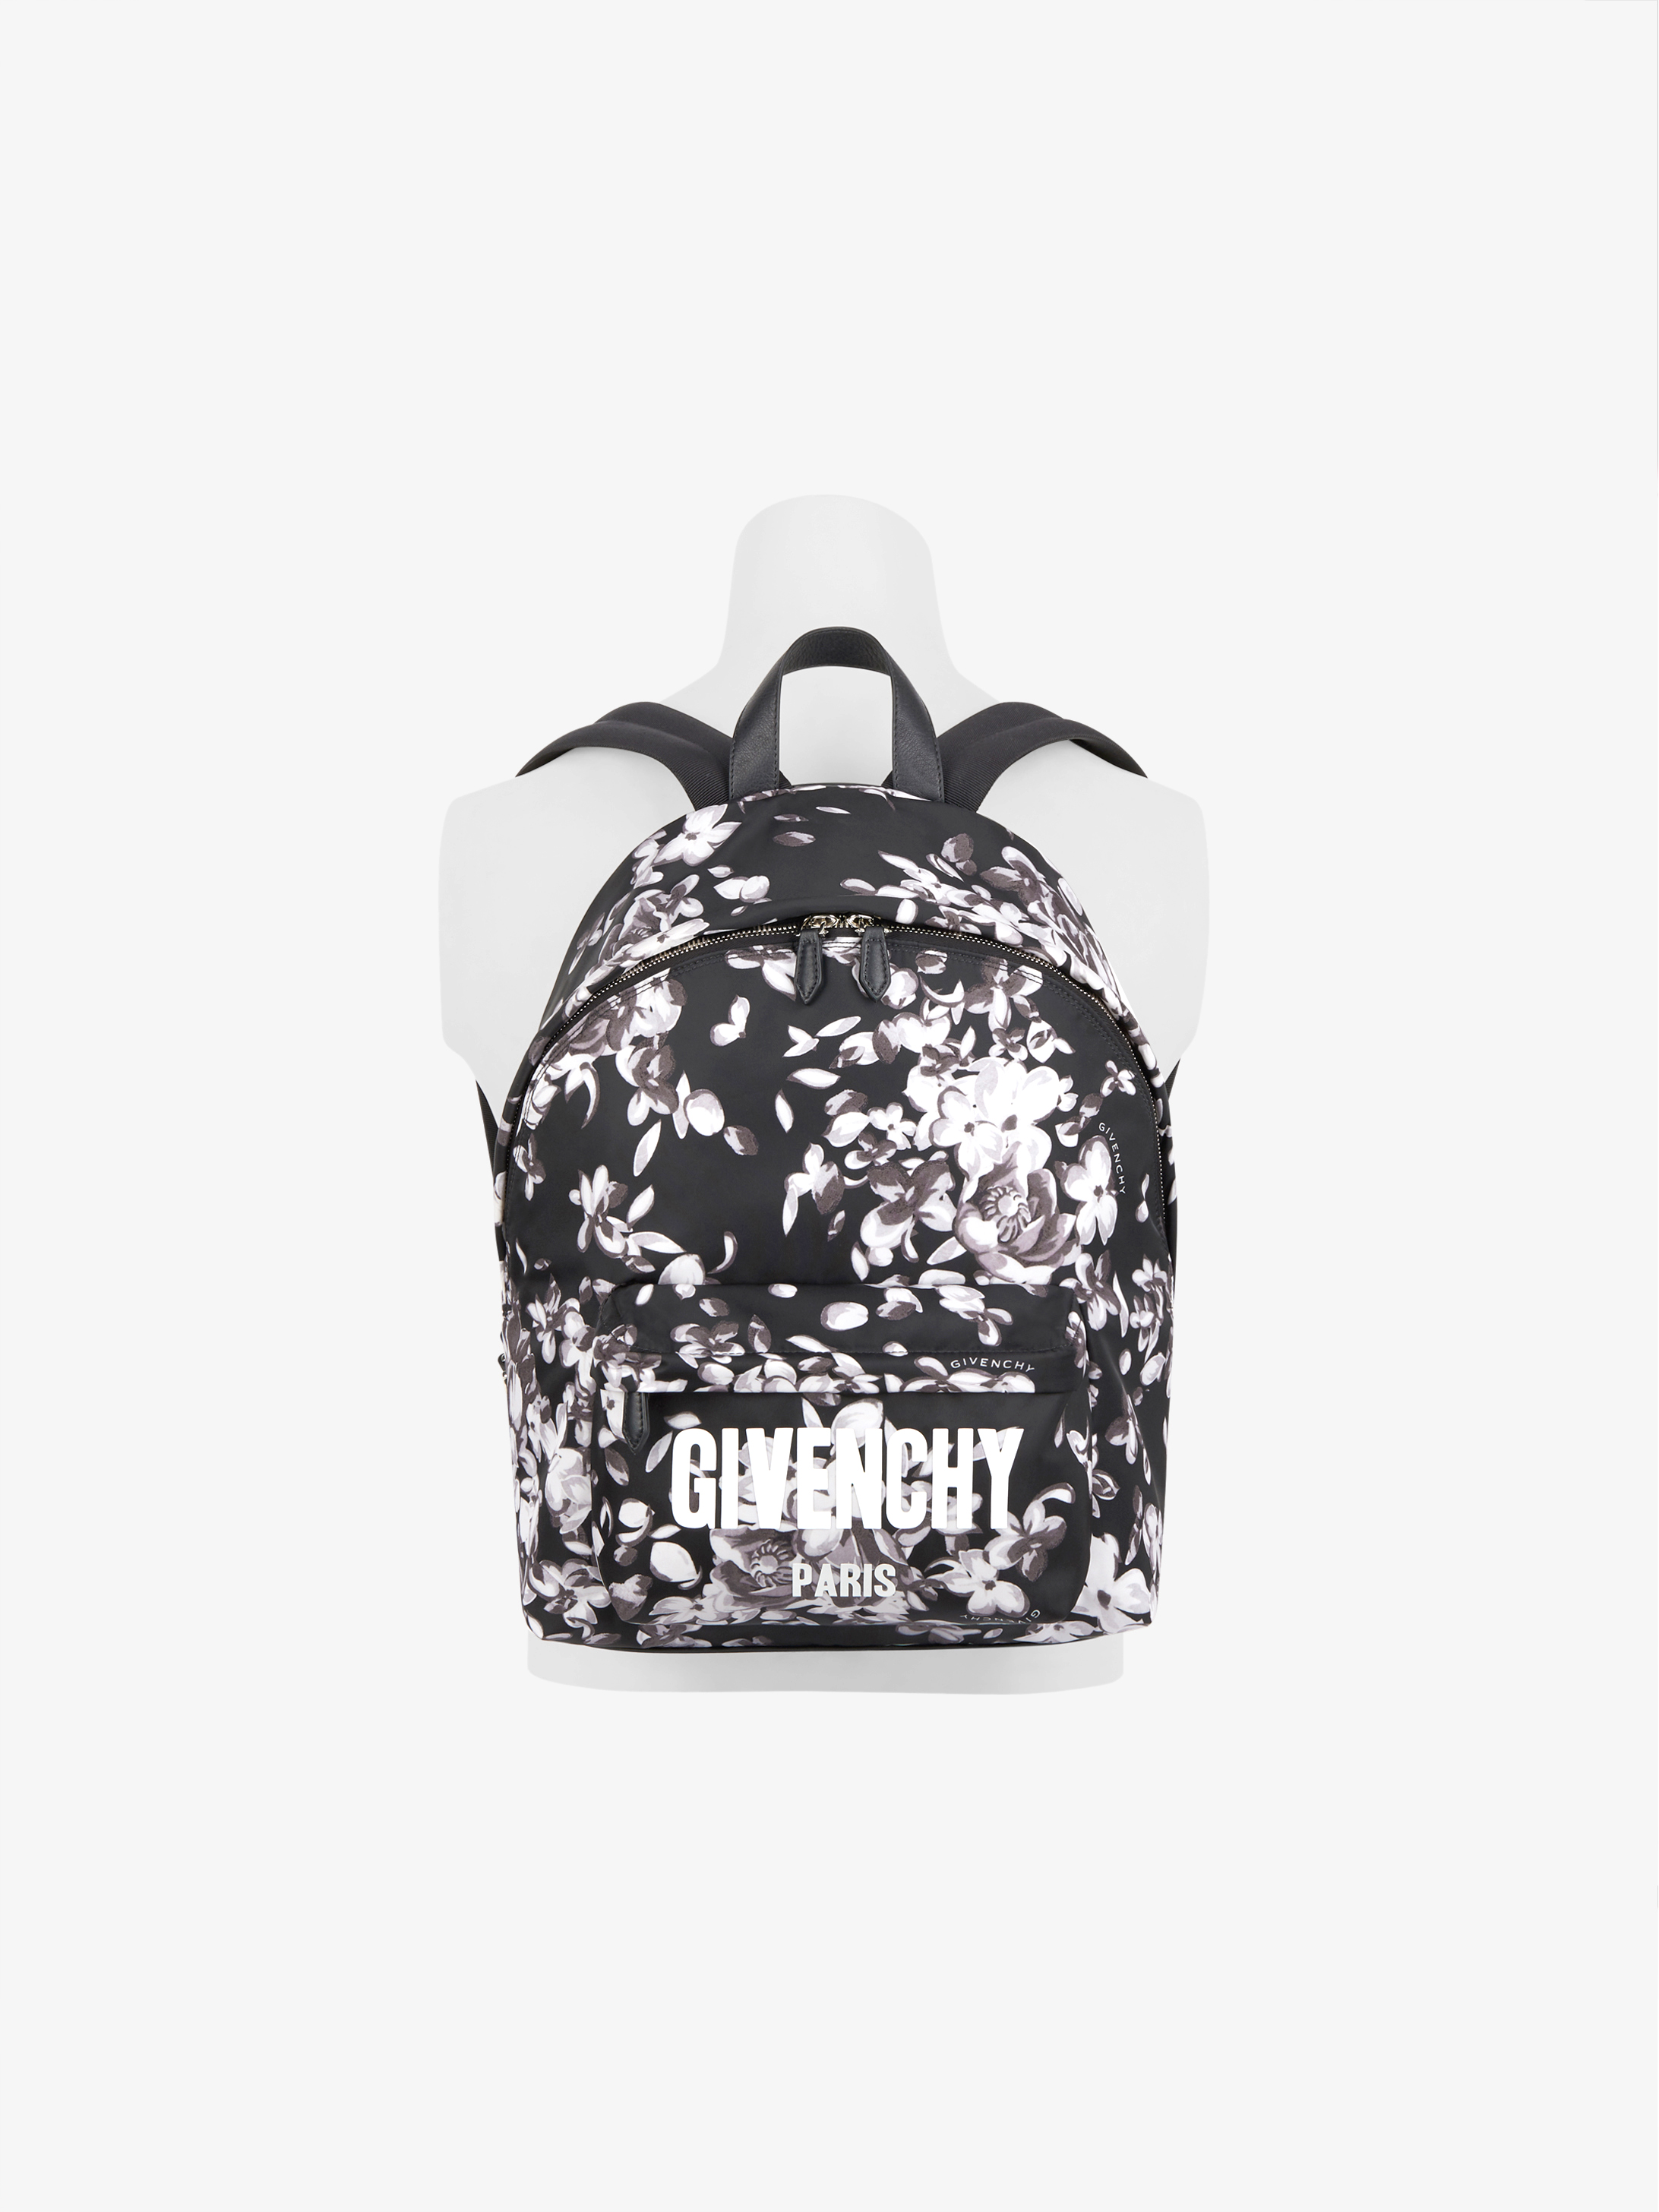 GIVENCHY PARIS flowers printed backpack